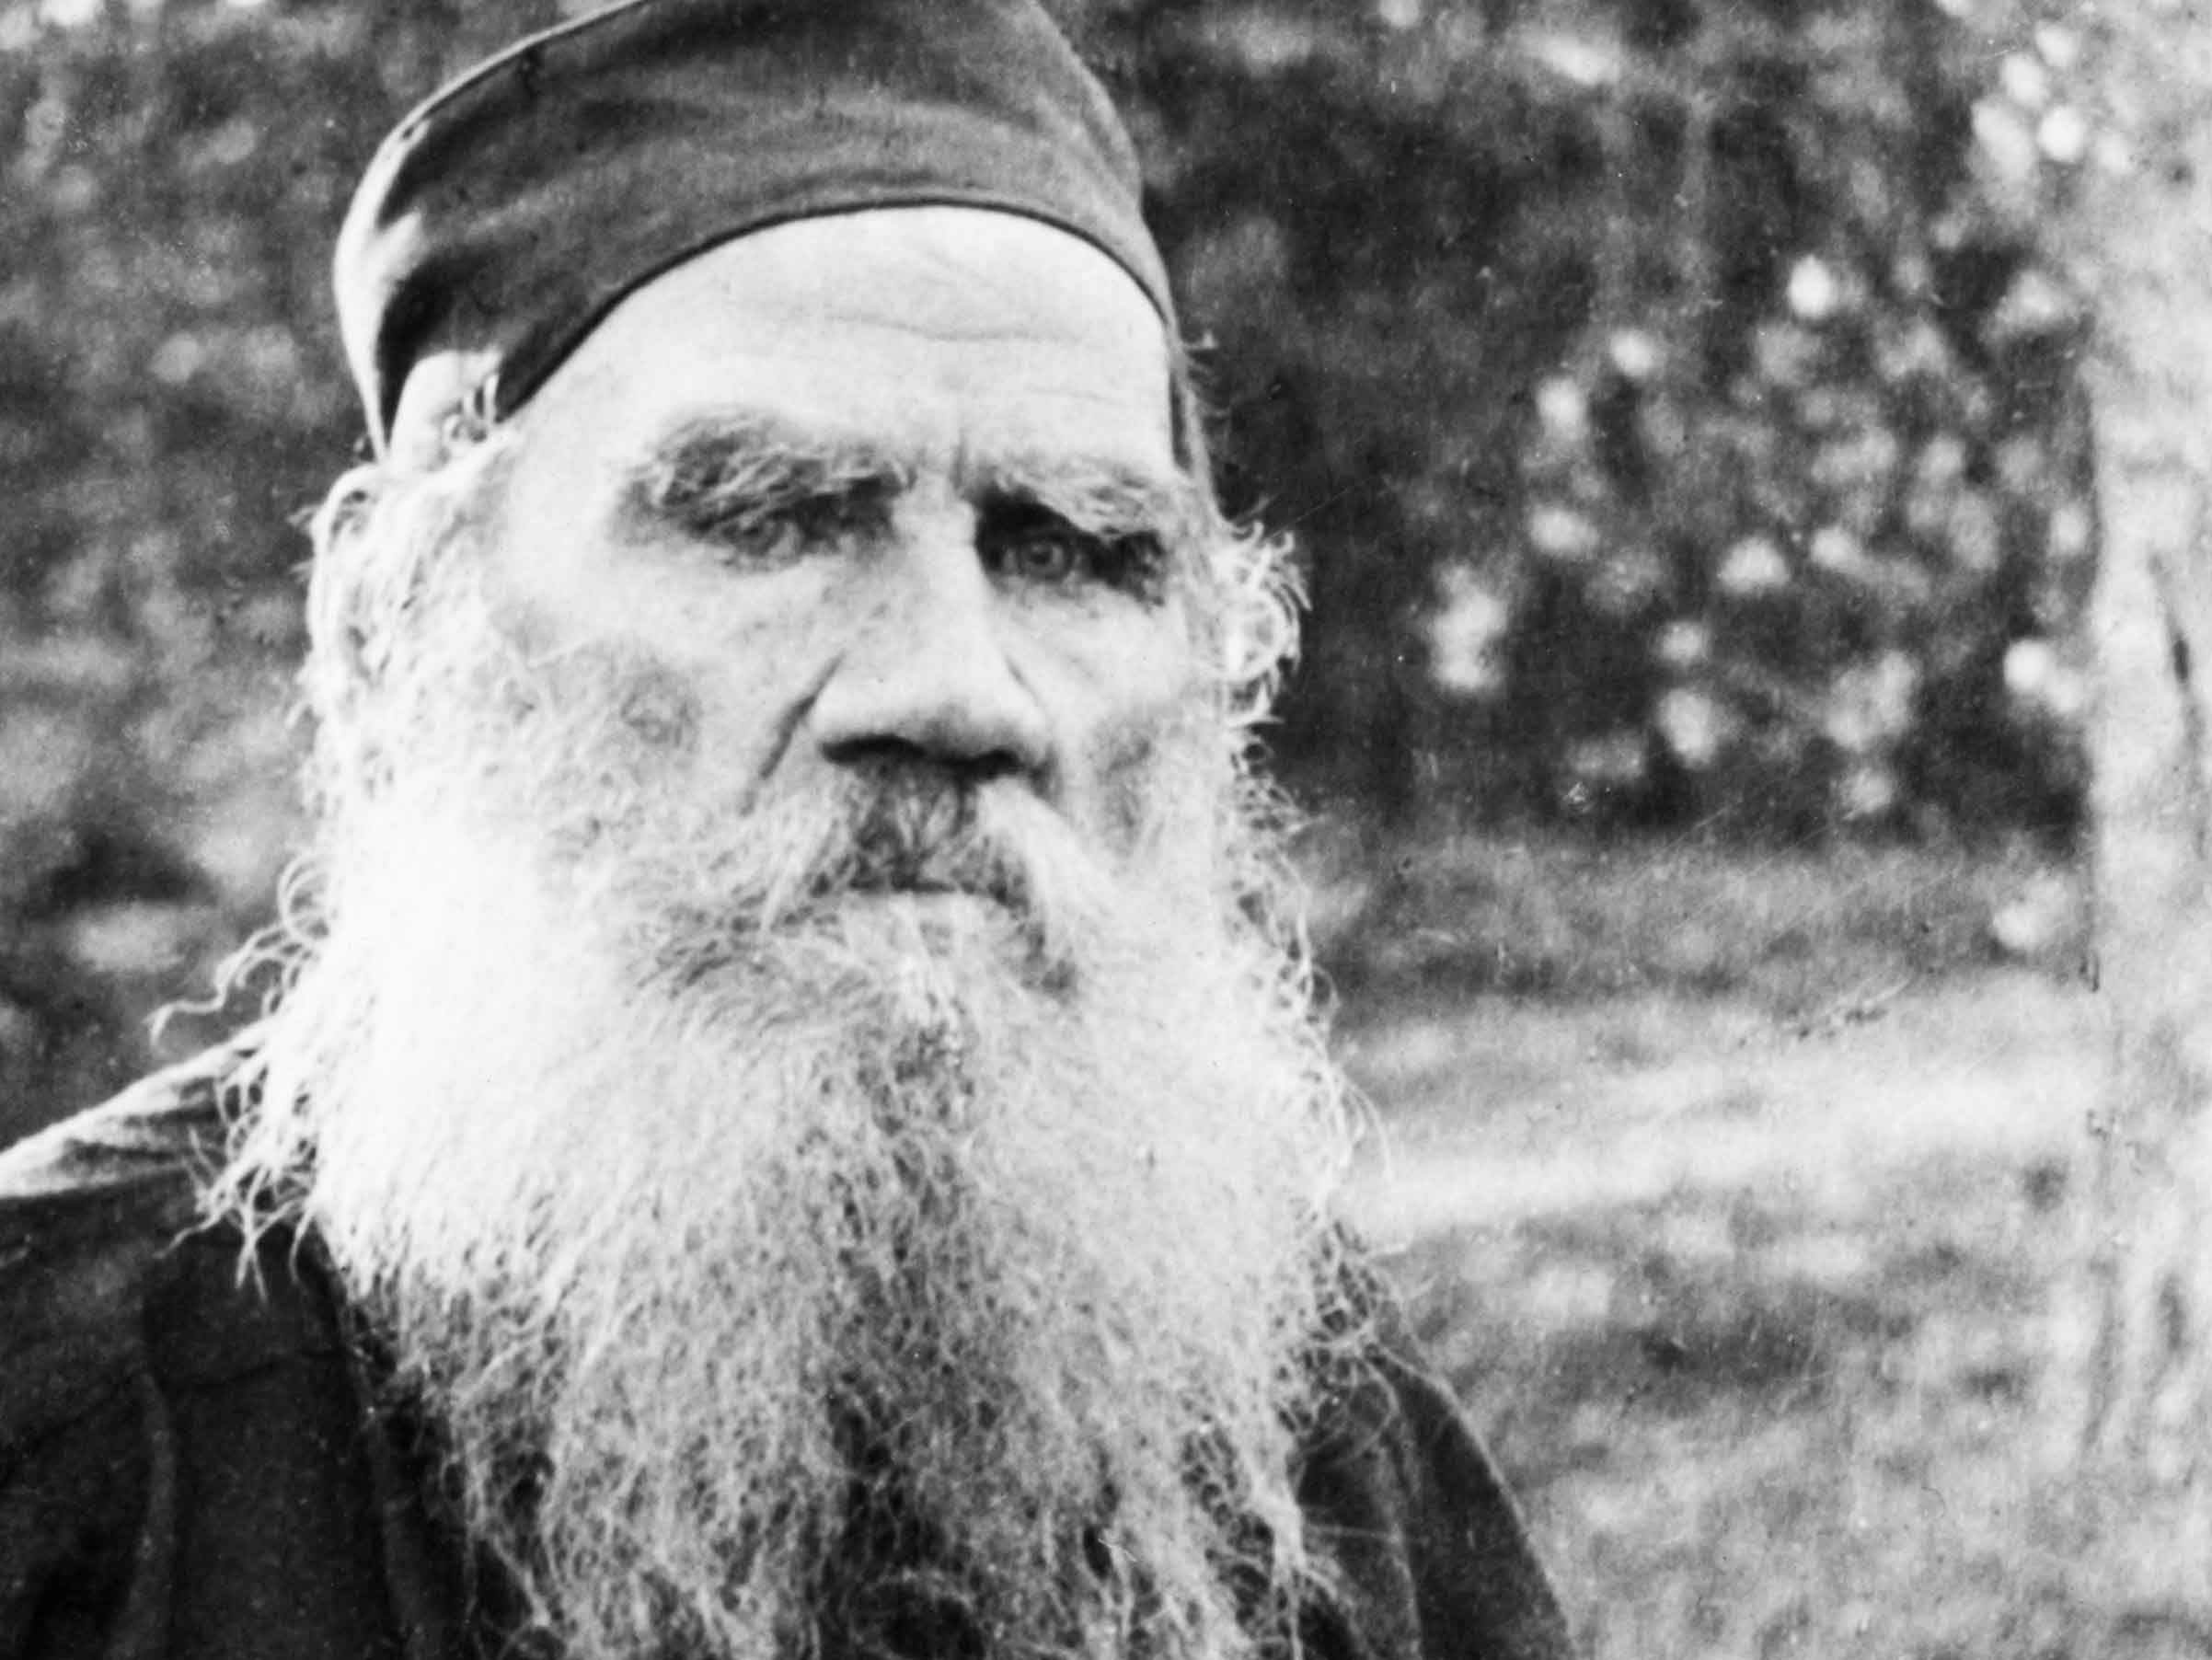 Tolstoy on Trial: Contesting the Imperial Past on Stage in Moscow and Berlin